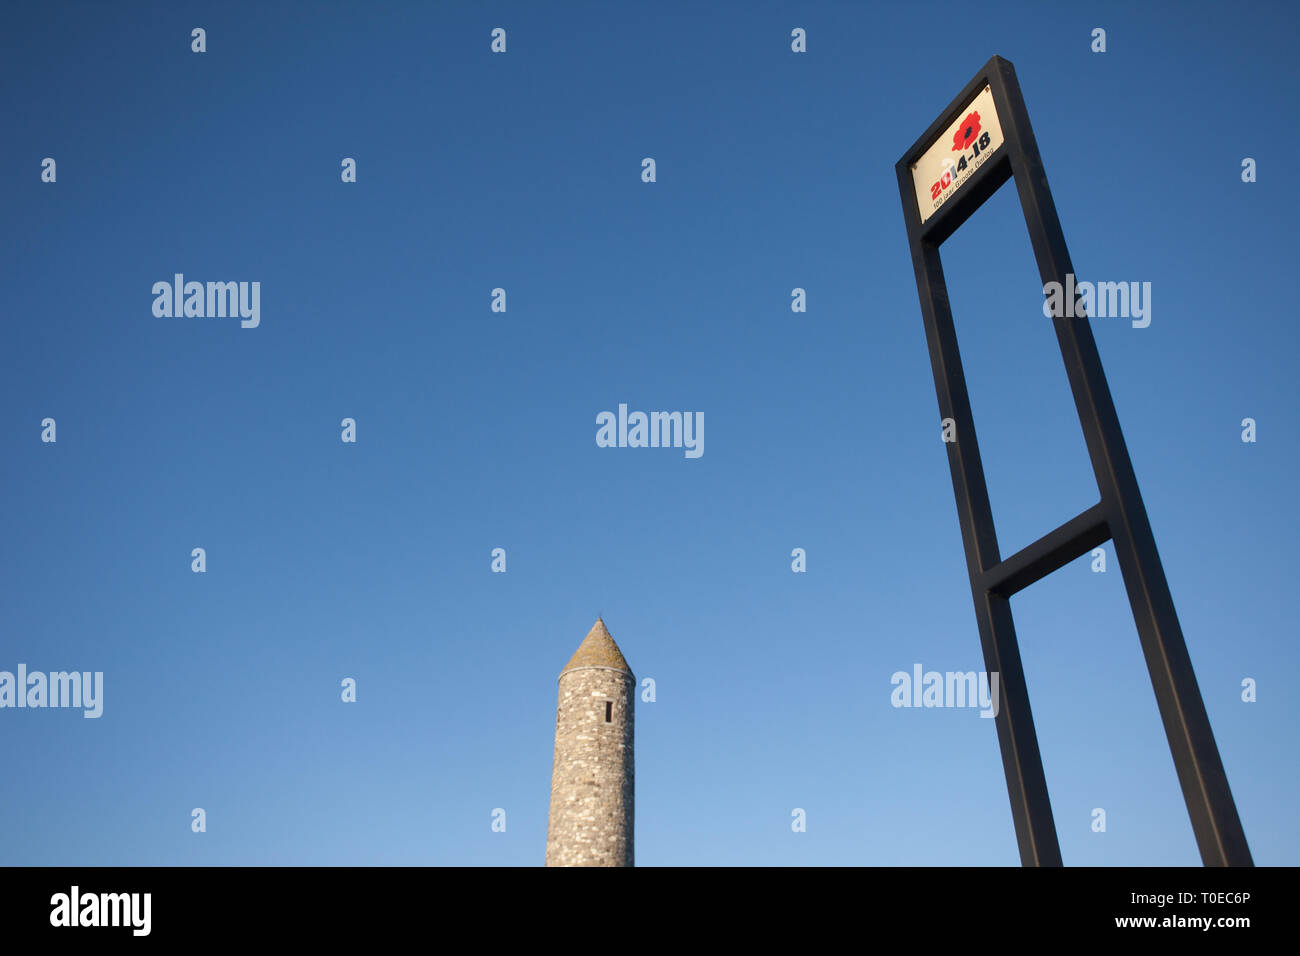 The entrance sign and top of the110 foot Irish round tower at the Irish Peace Park in Messine, near Ypres in Belgium - Stock Image